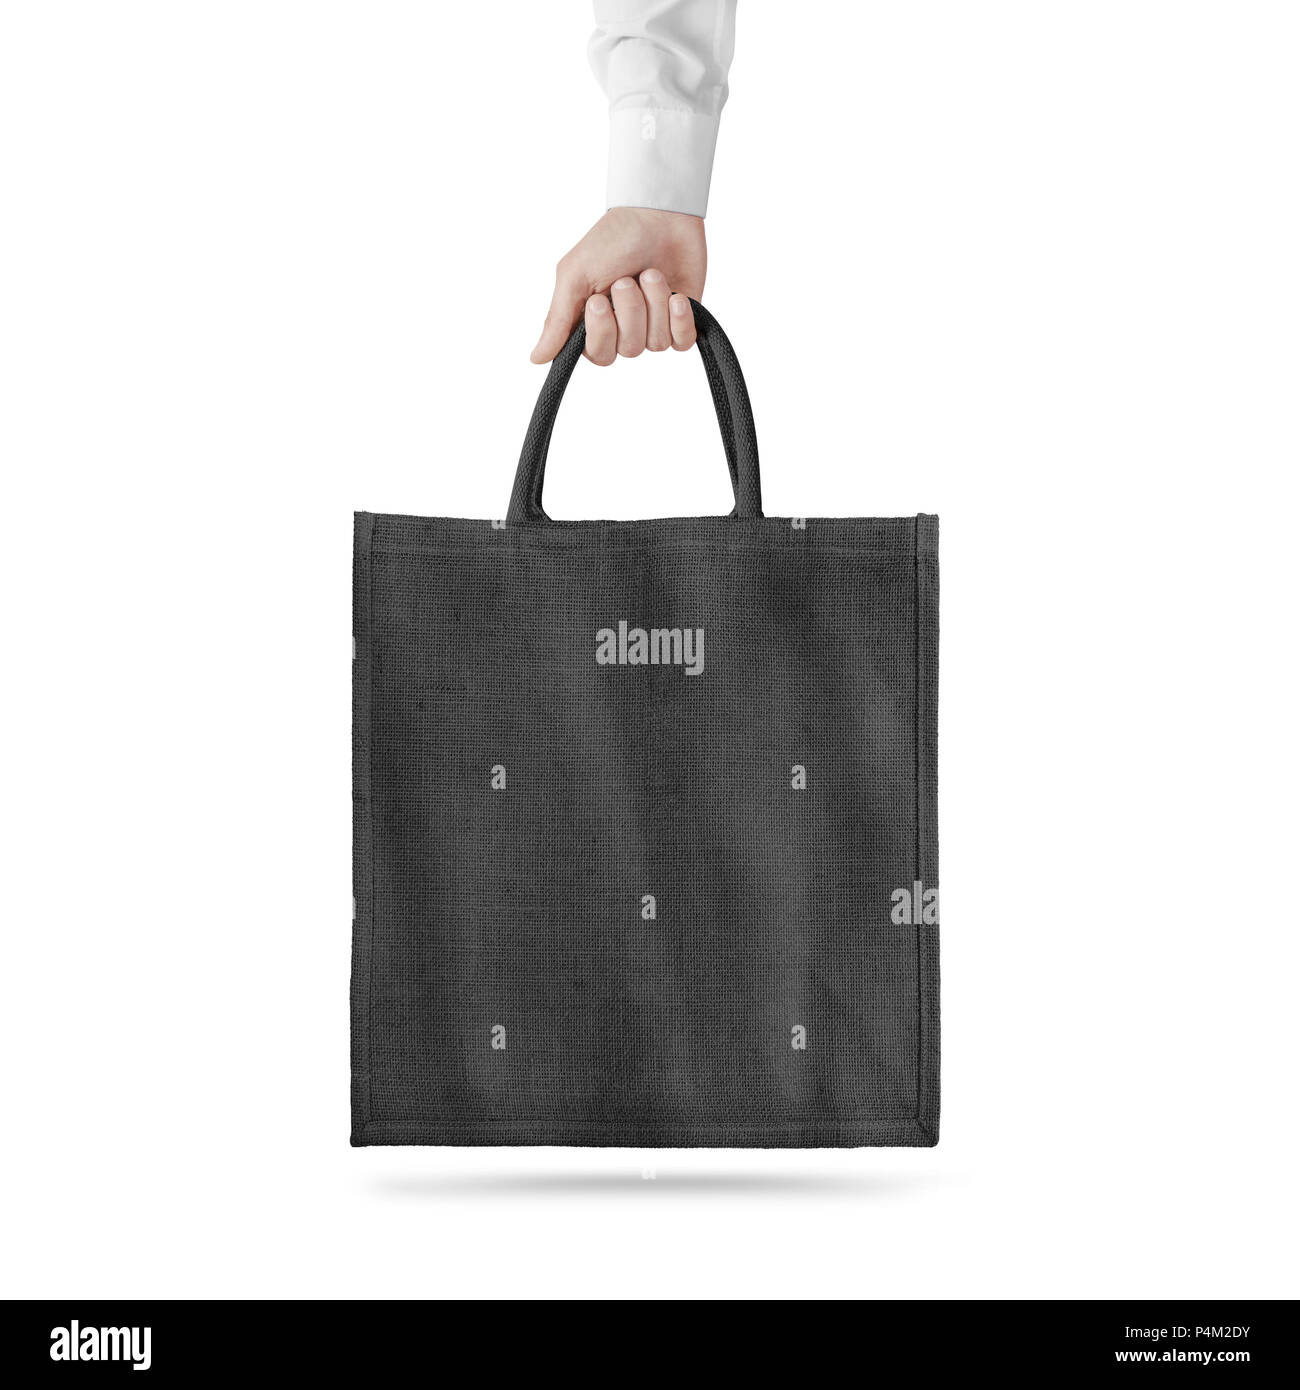 Blank black cotton eco bag design mockup isolated holding hand blank black cotton eco bag design mockup isolated holding hand clipping path textile cloth bag mock up template hold arm tote shoe consumer reusab maxwellsz